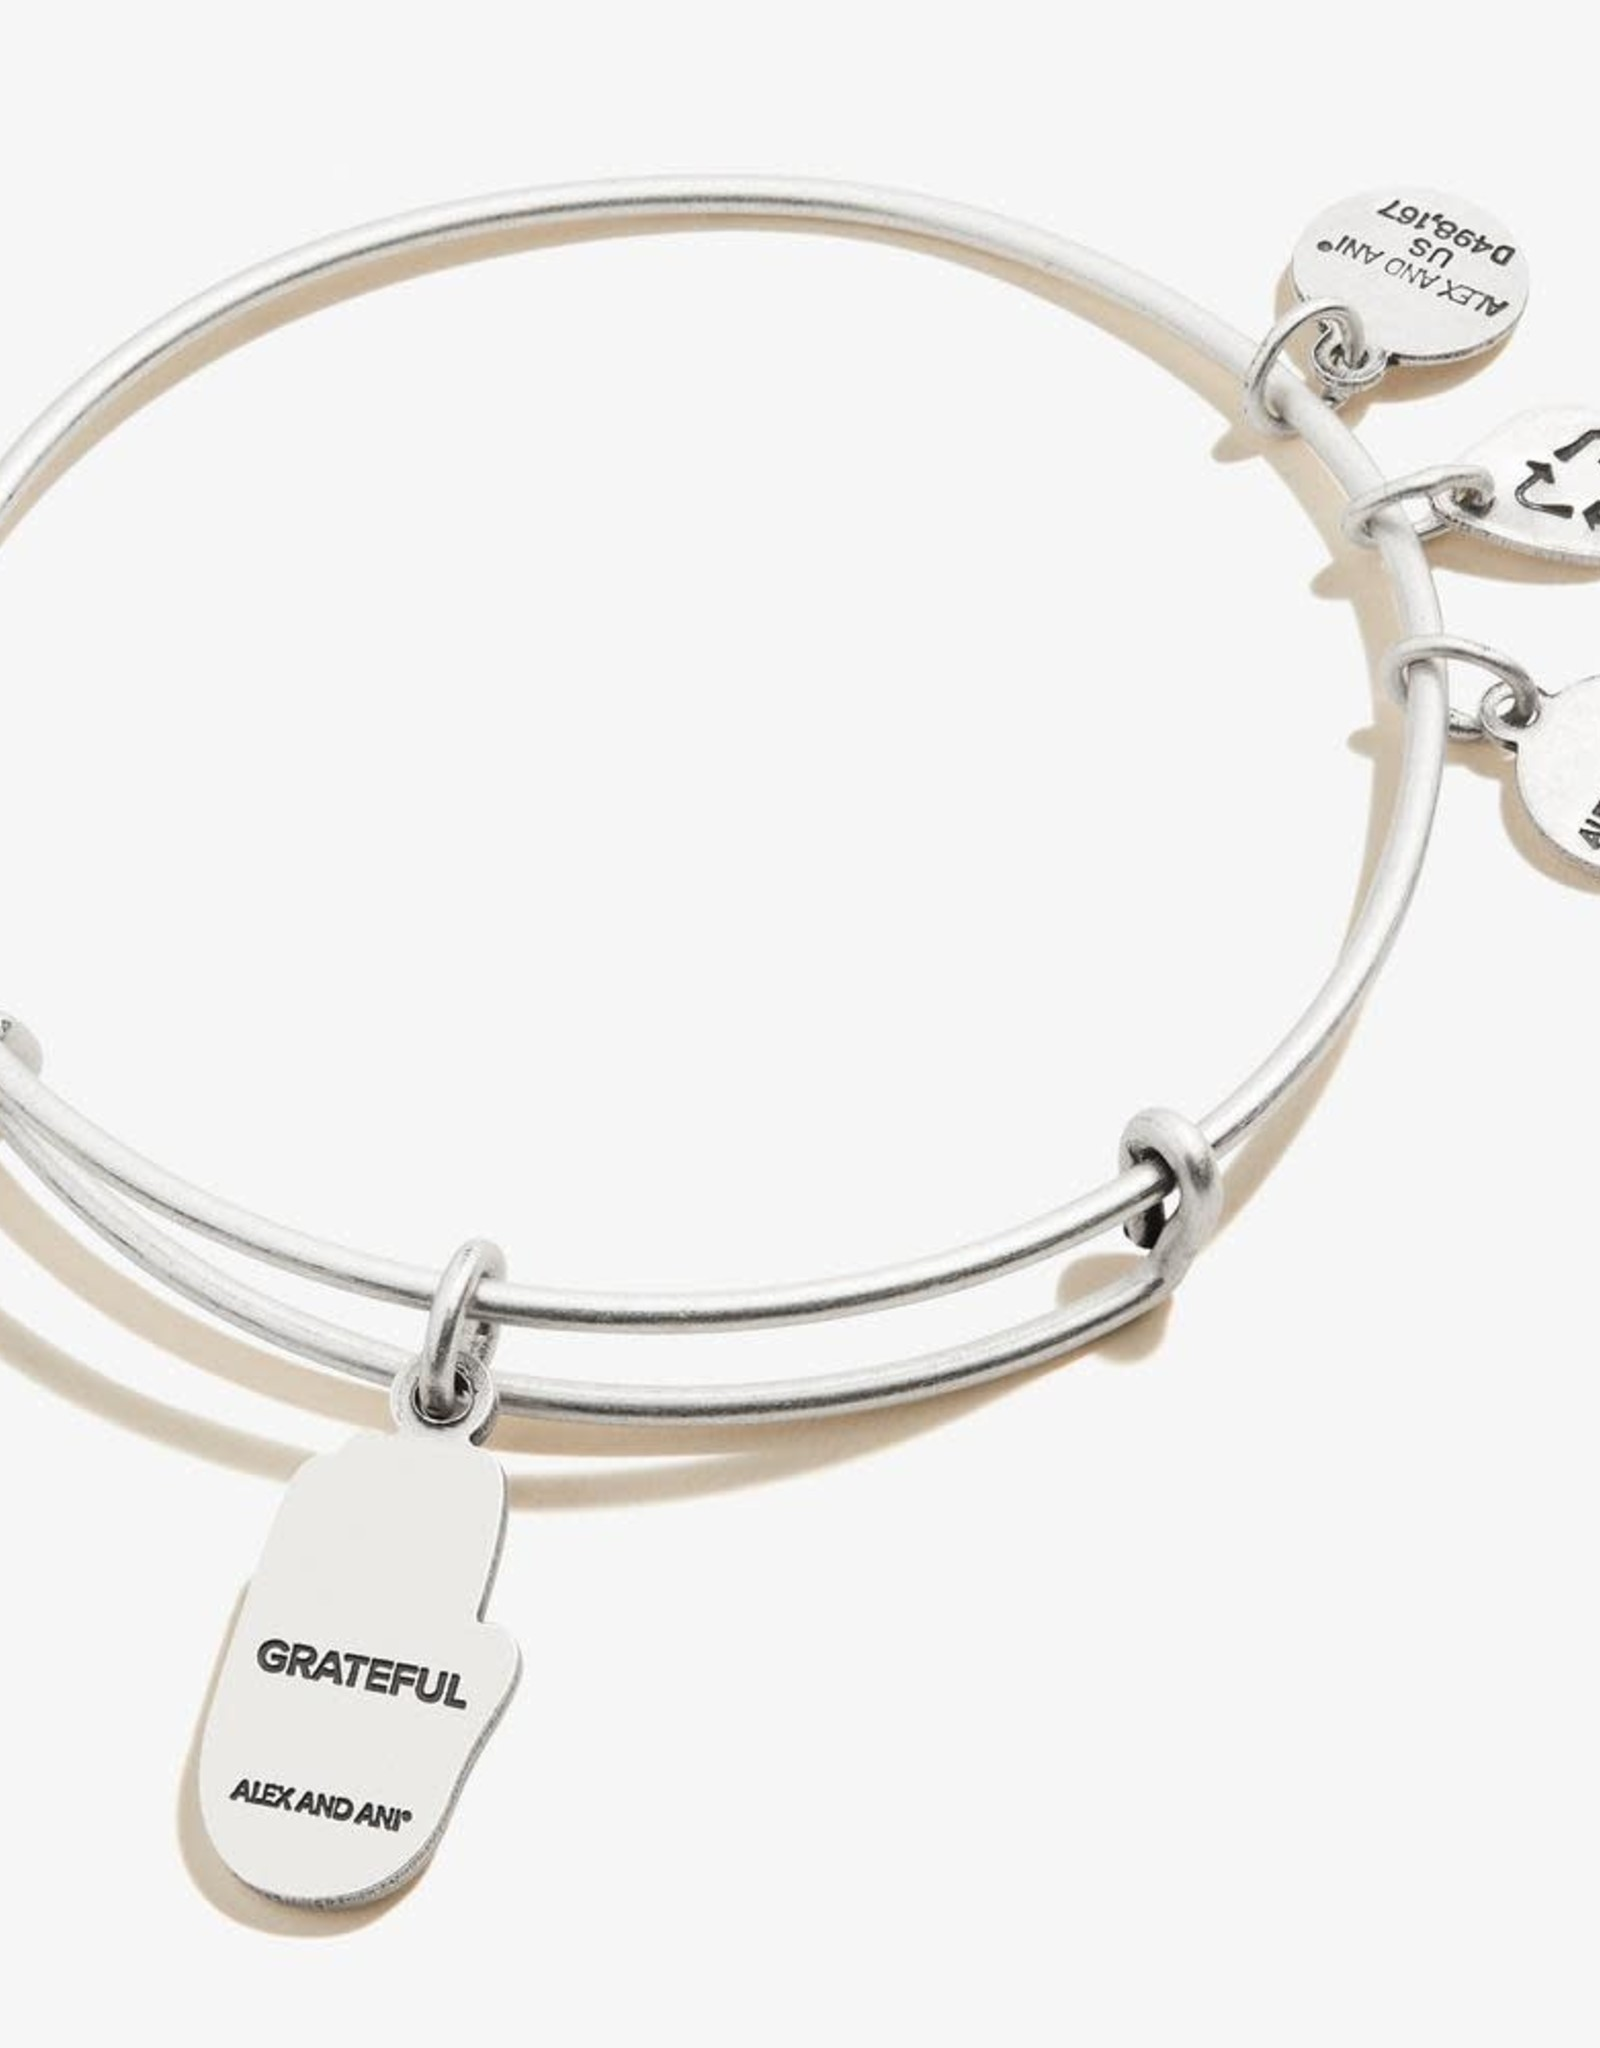 Alex and Ani Alex and Ani, Grateful Heart, RS